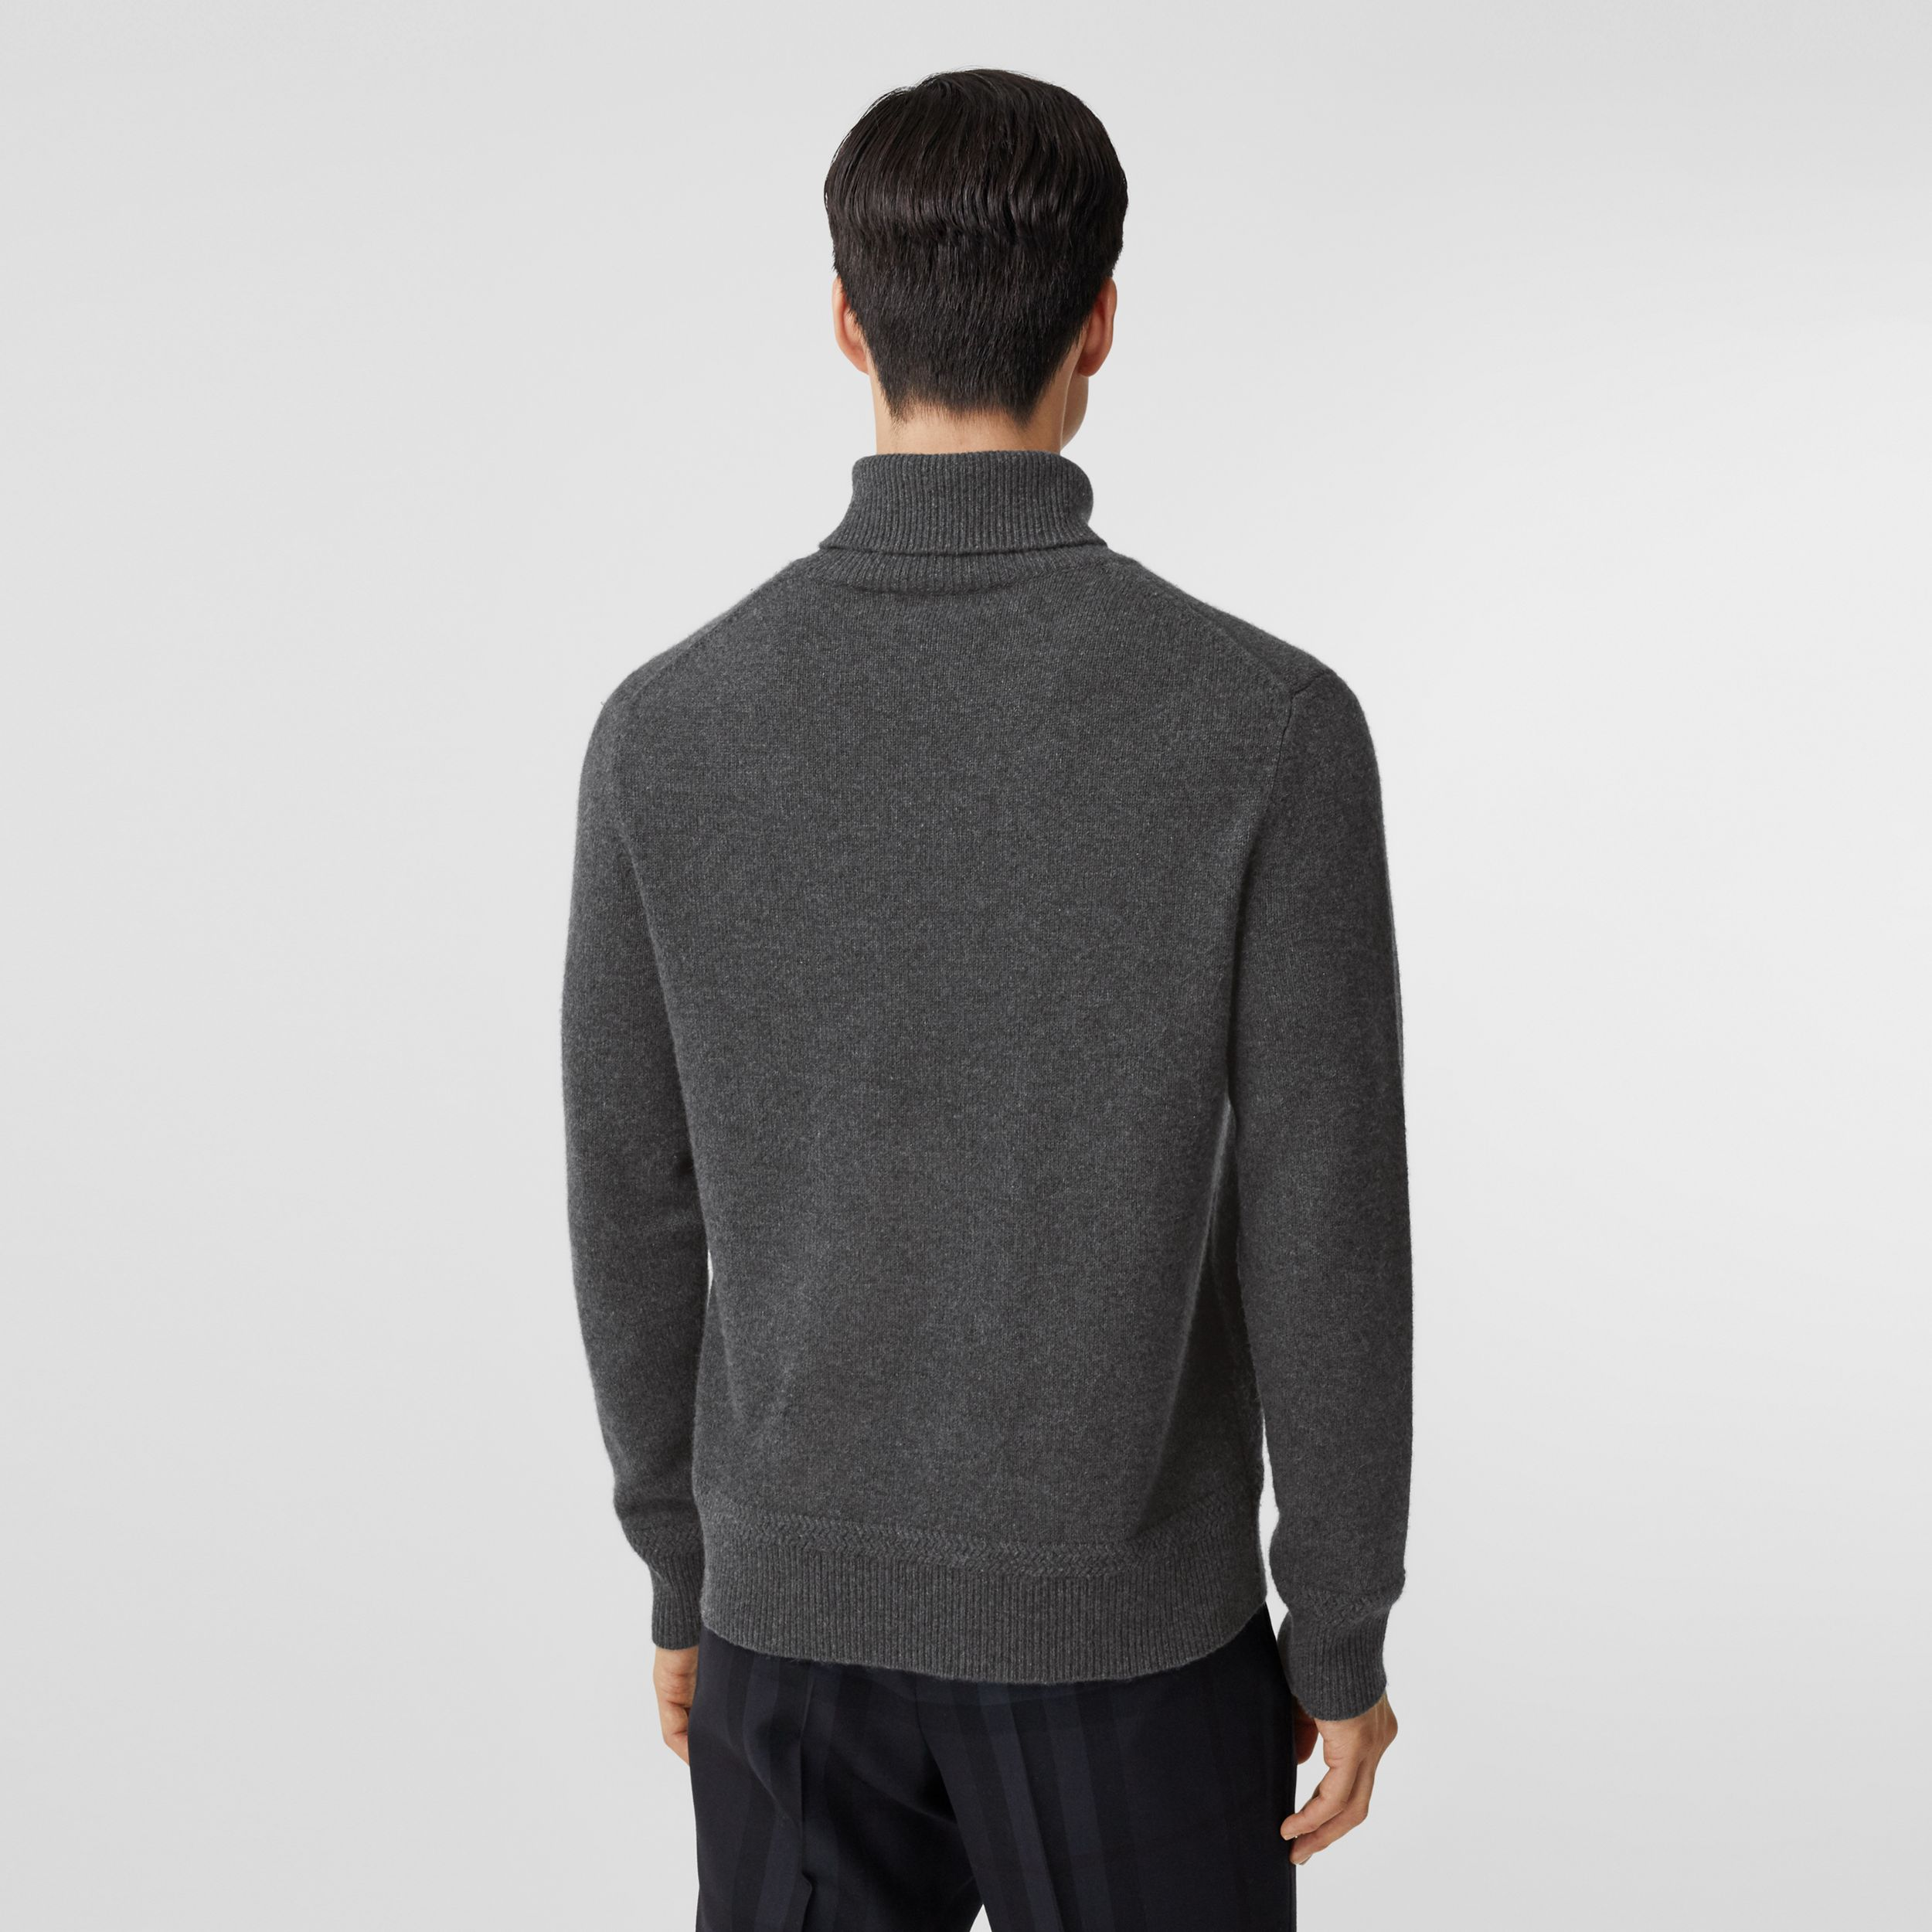 Monogram Motif Cashmere Roll-neck Sweater in Charcoal - Men | Burberry Australia - 3